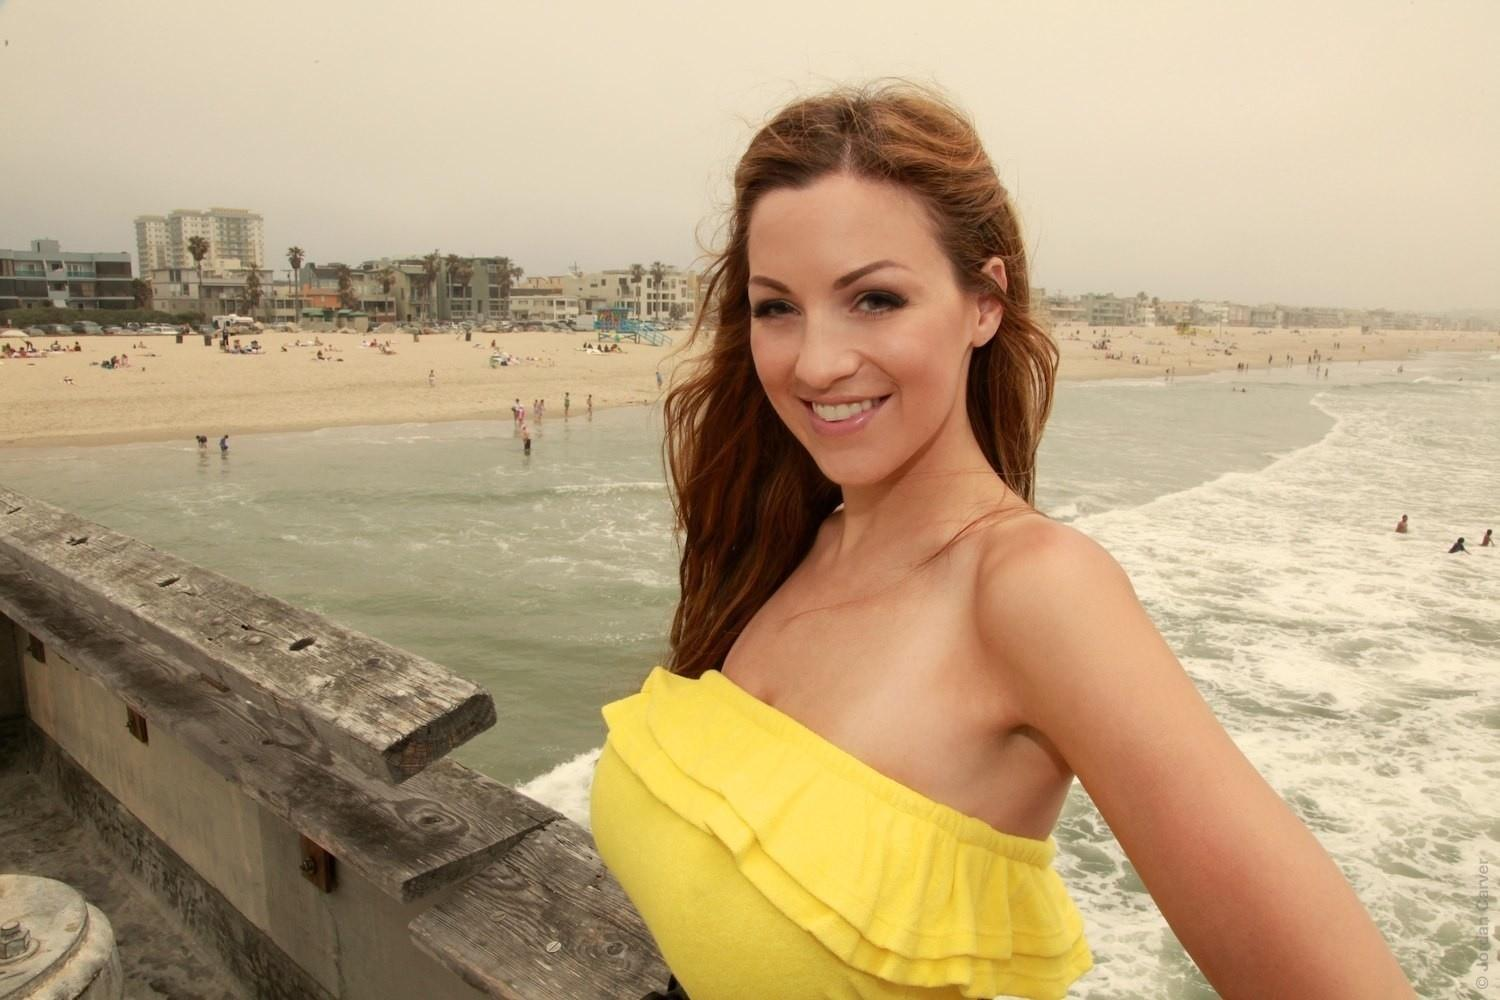 Jordan Carver at 1280 x 960 size wallpapers HD quality